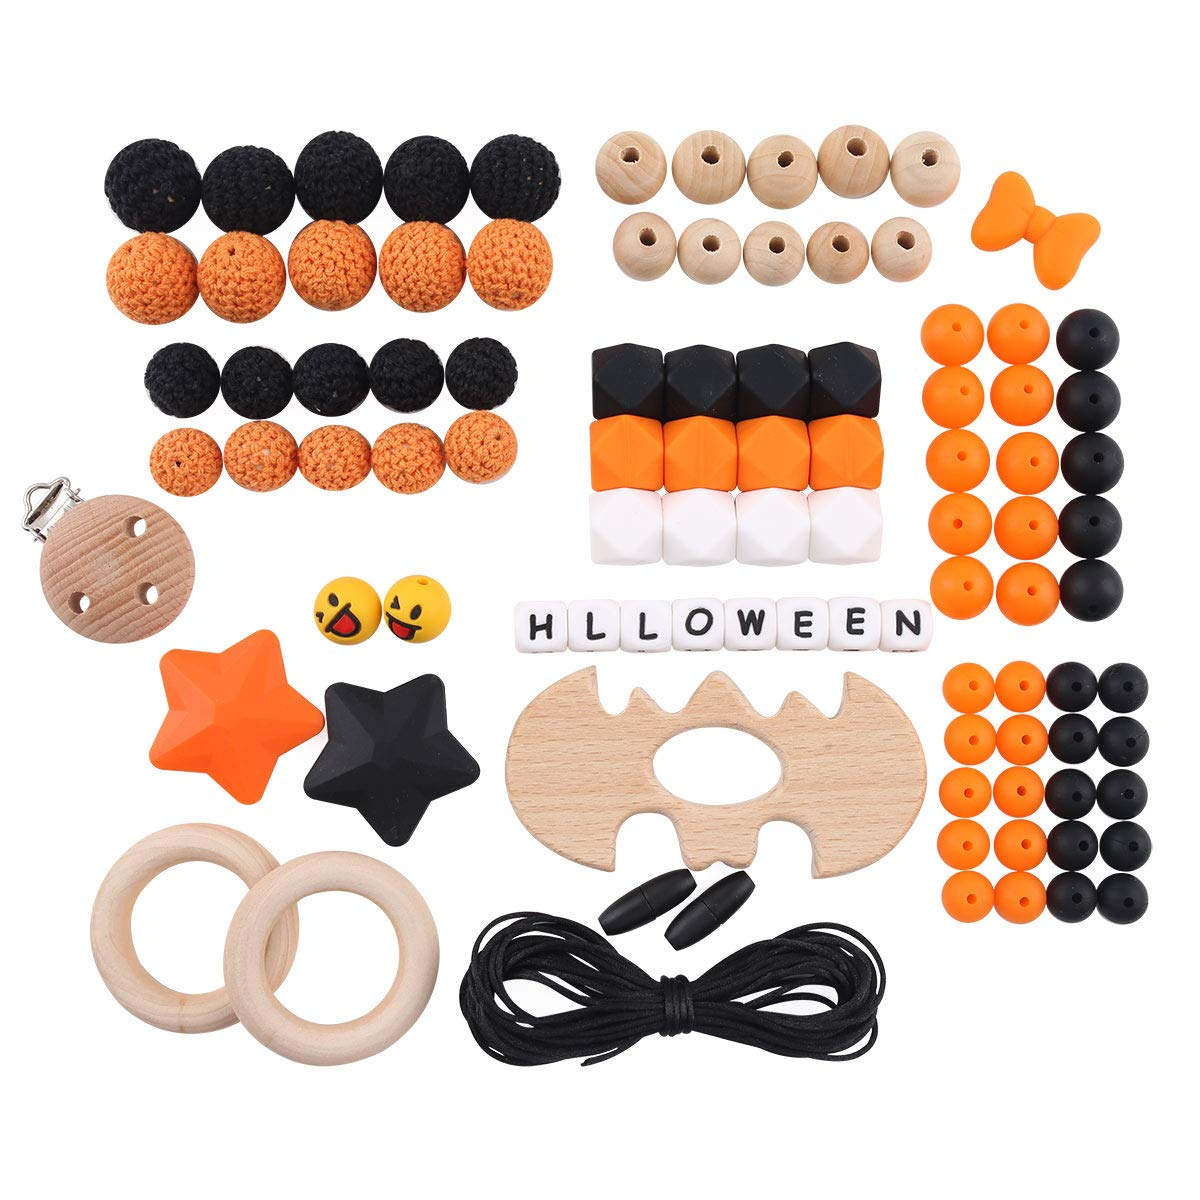 HAO JIE Baby DIY Halloween Wooden Bat Teething Kit Silicone Teether Beads Necklace Making Accessories